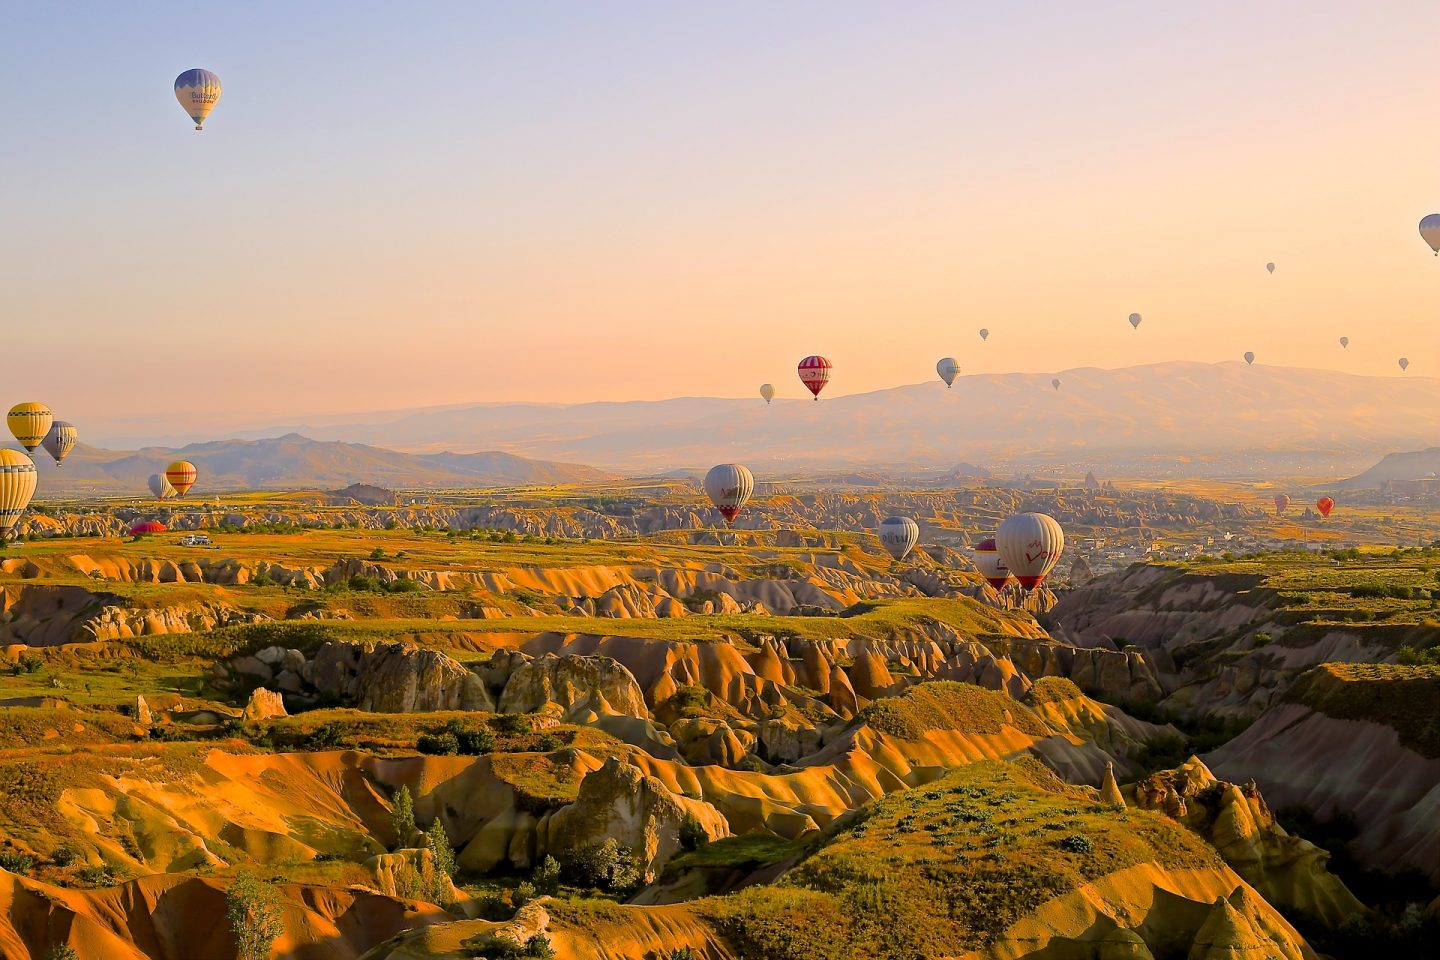 EVERYTHING YOU NEED TO KNOW BEFORE TRAVELLING TO TURKEY